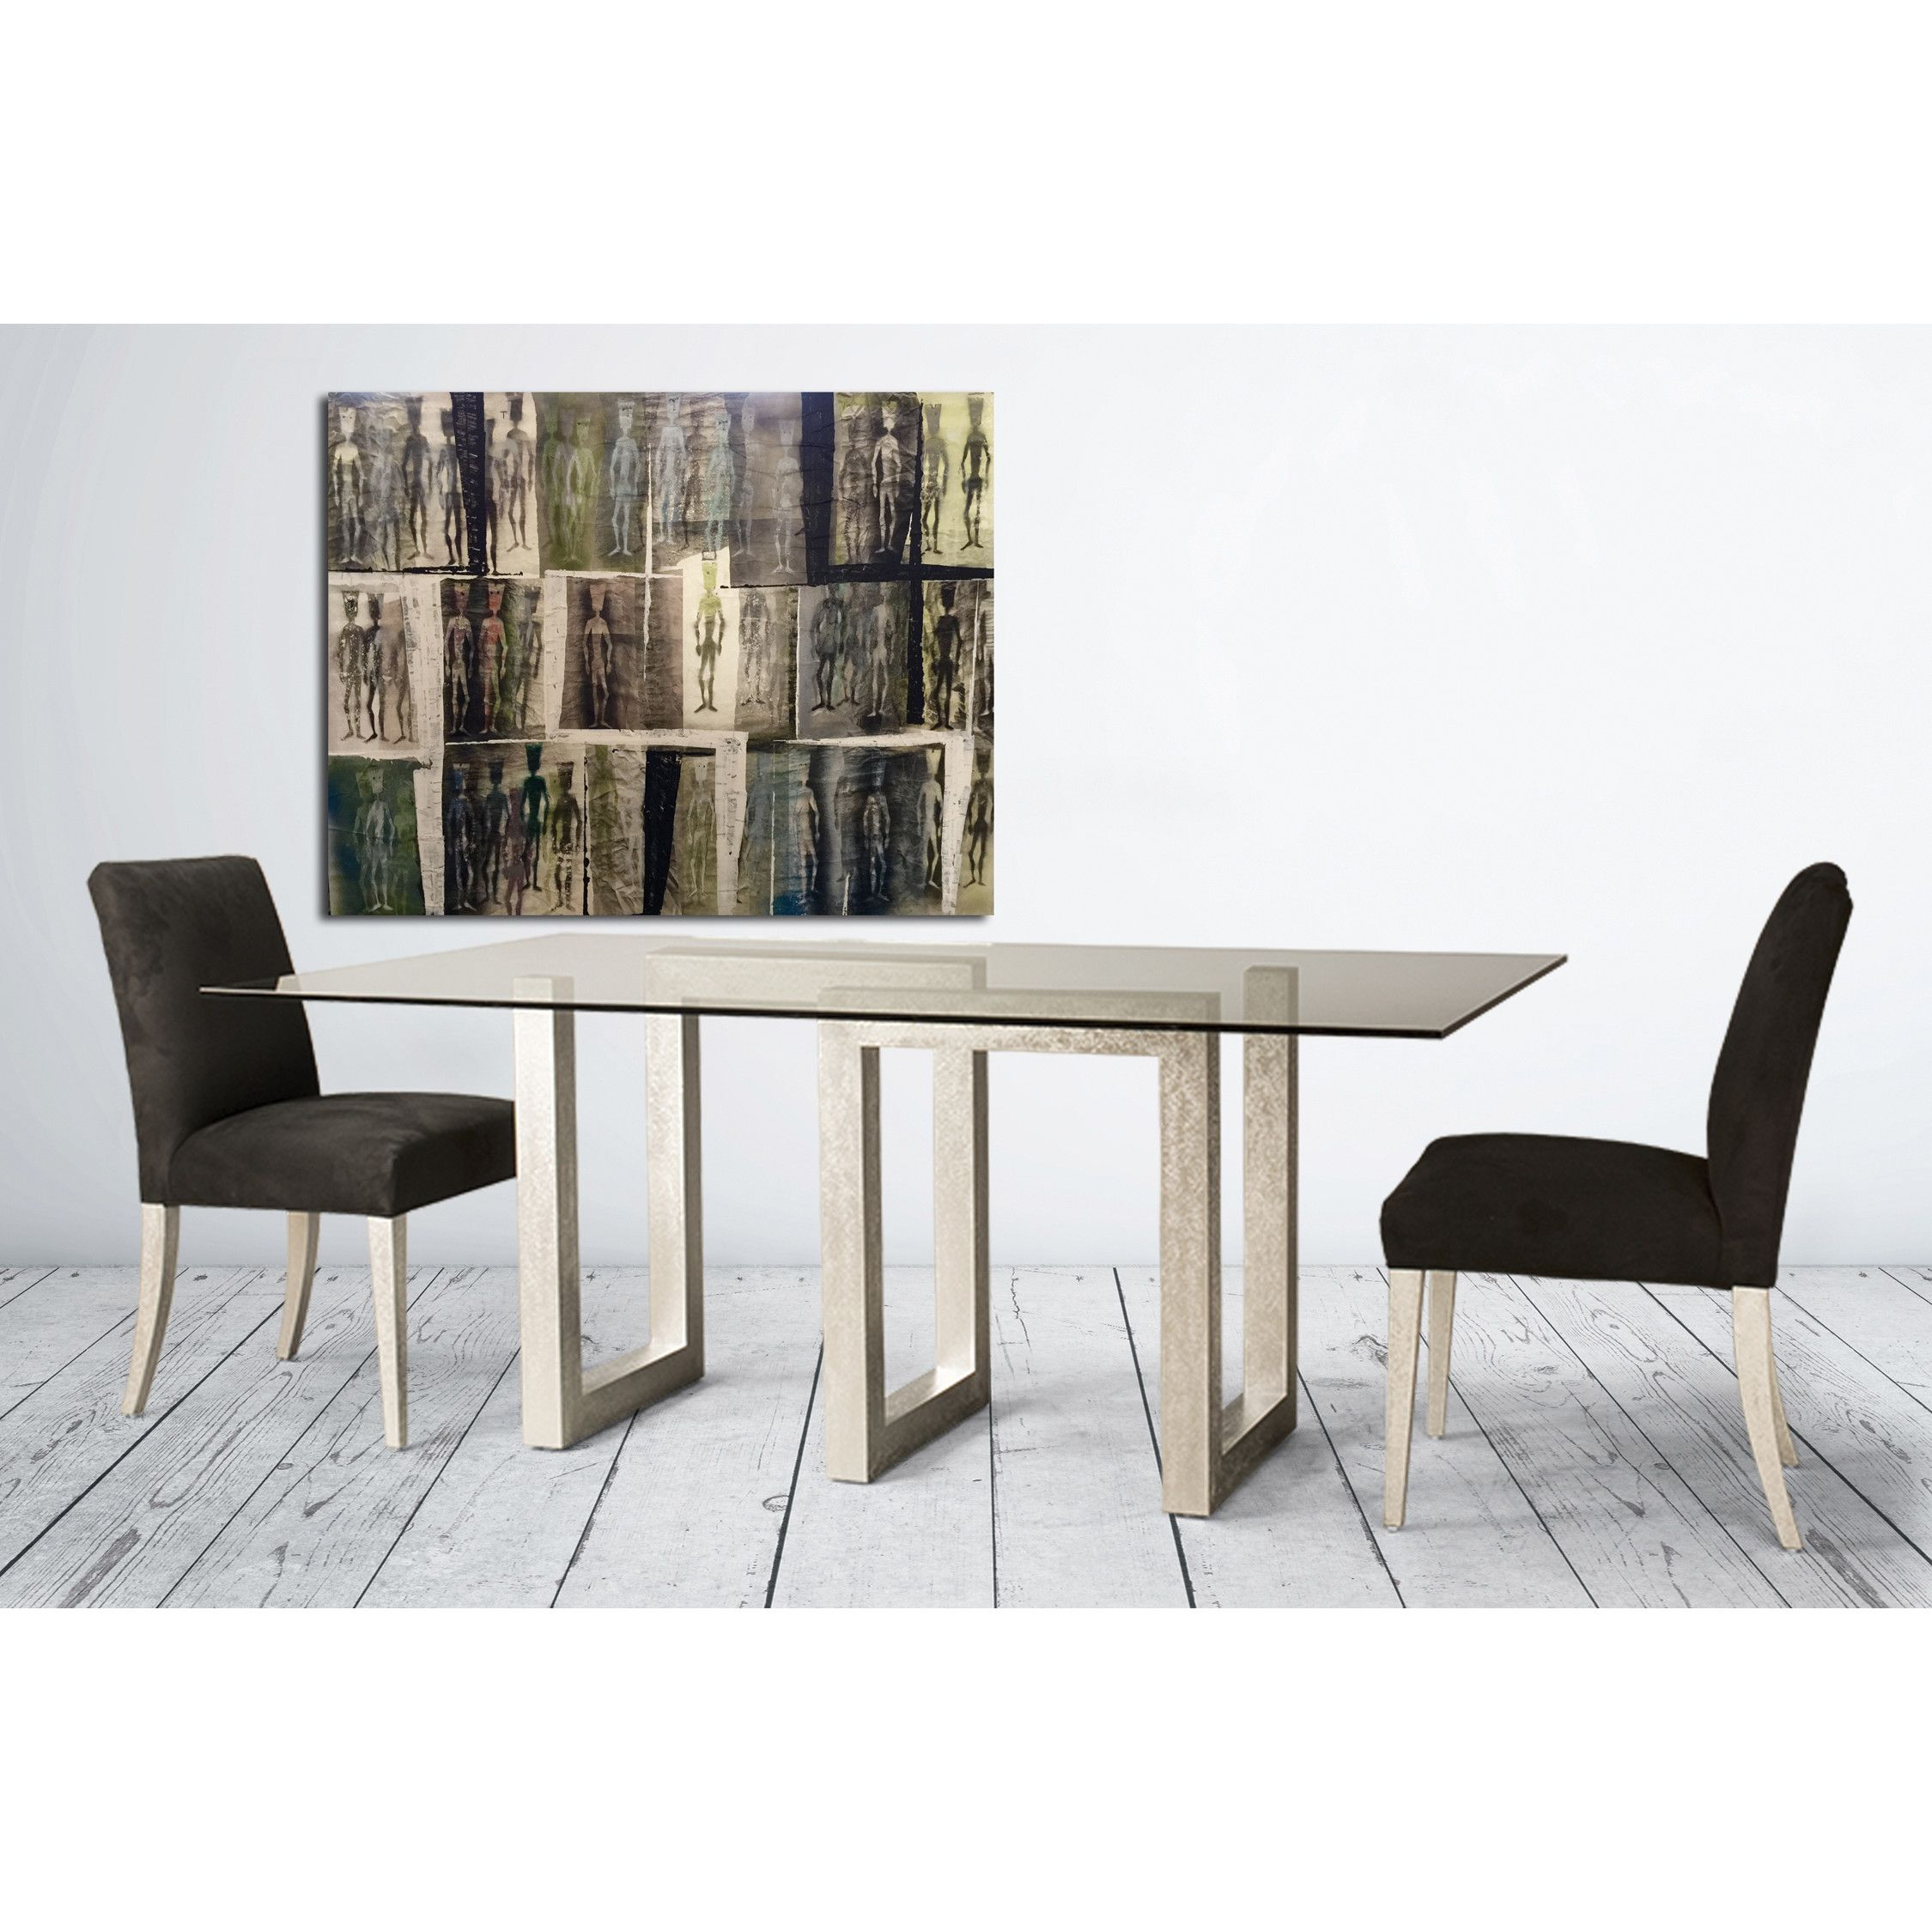 This glass dining table with its unique modern design features a ...